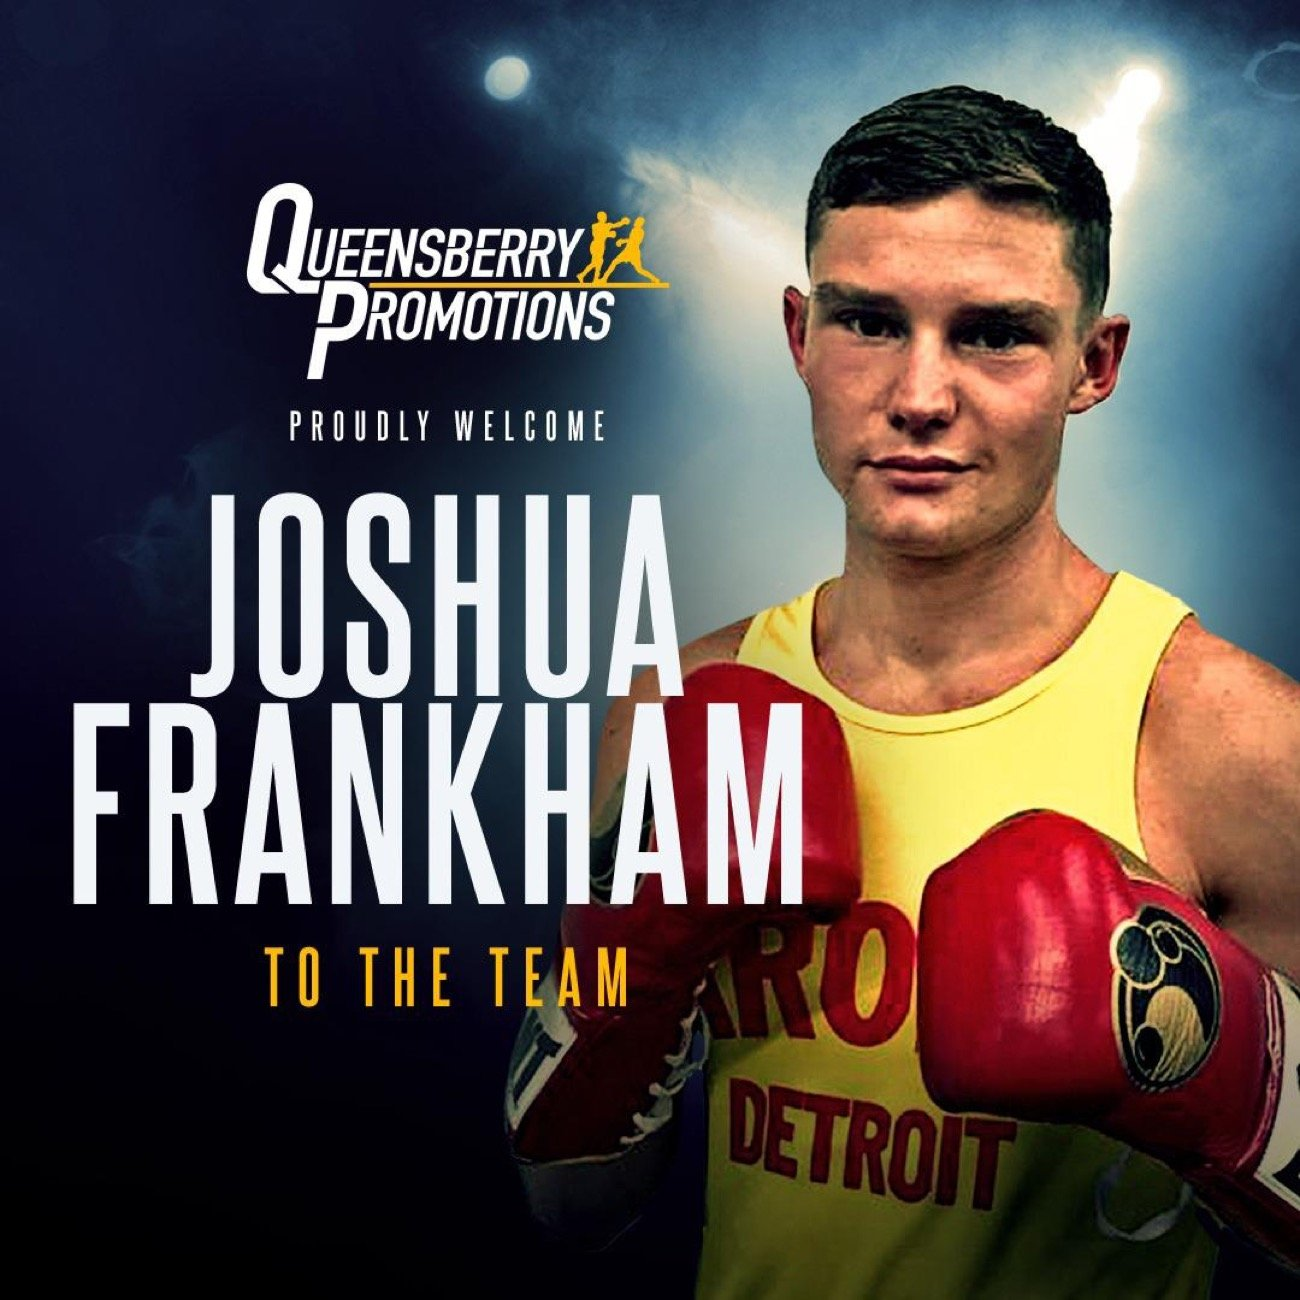 Josh Frankham - FOUR-TIMES NATIONAL champion and Tyson Fury's cousin, Josh Frankham, has turned professional with Frank Warren and will make his debut under the Queensberry Promotions banner when boxing resumes following the current restrictions.